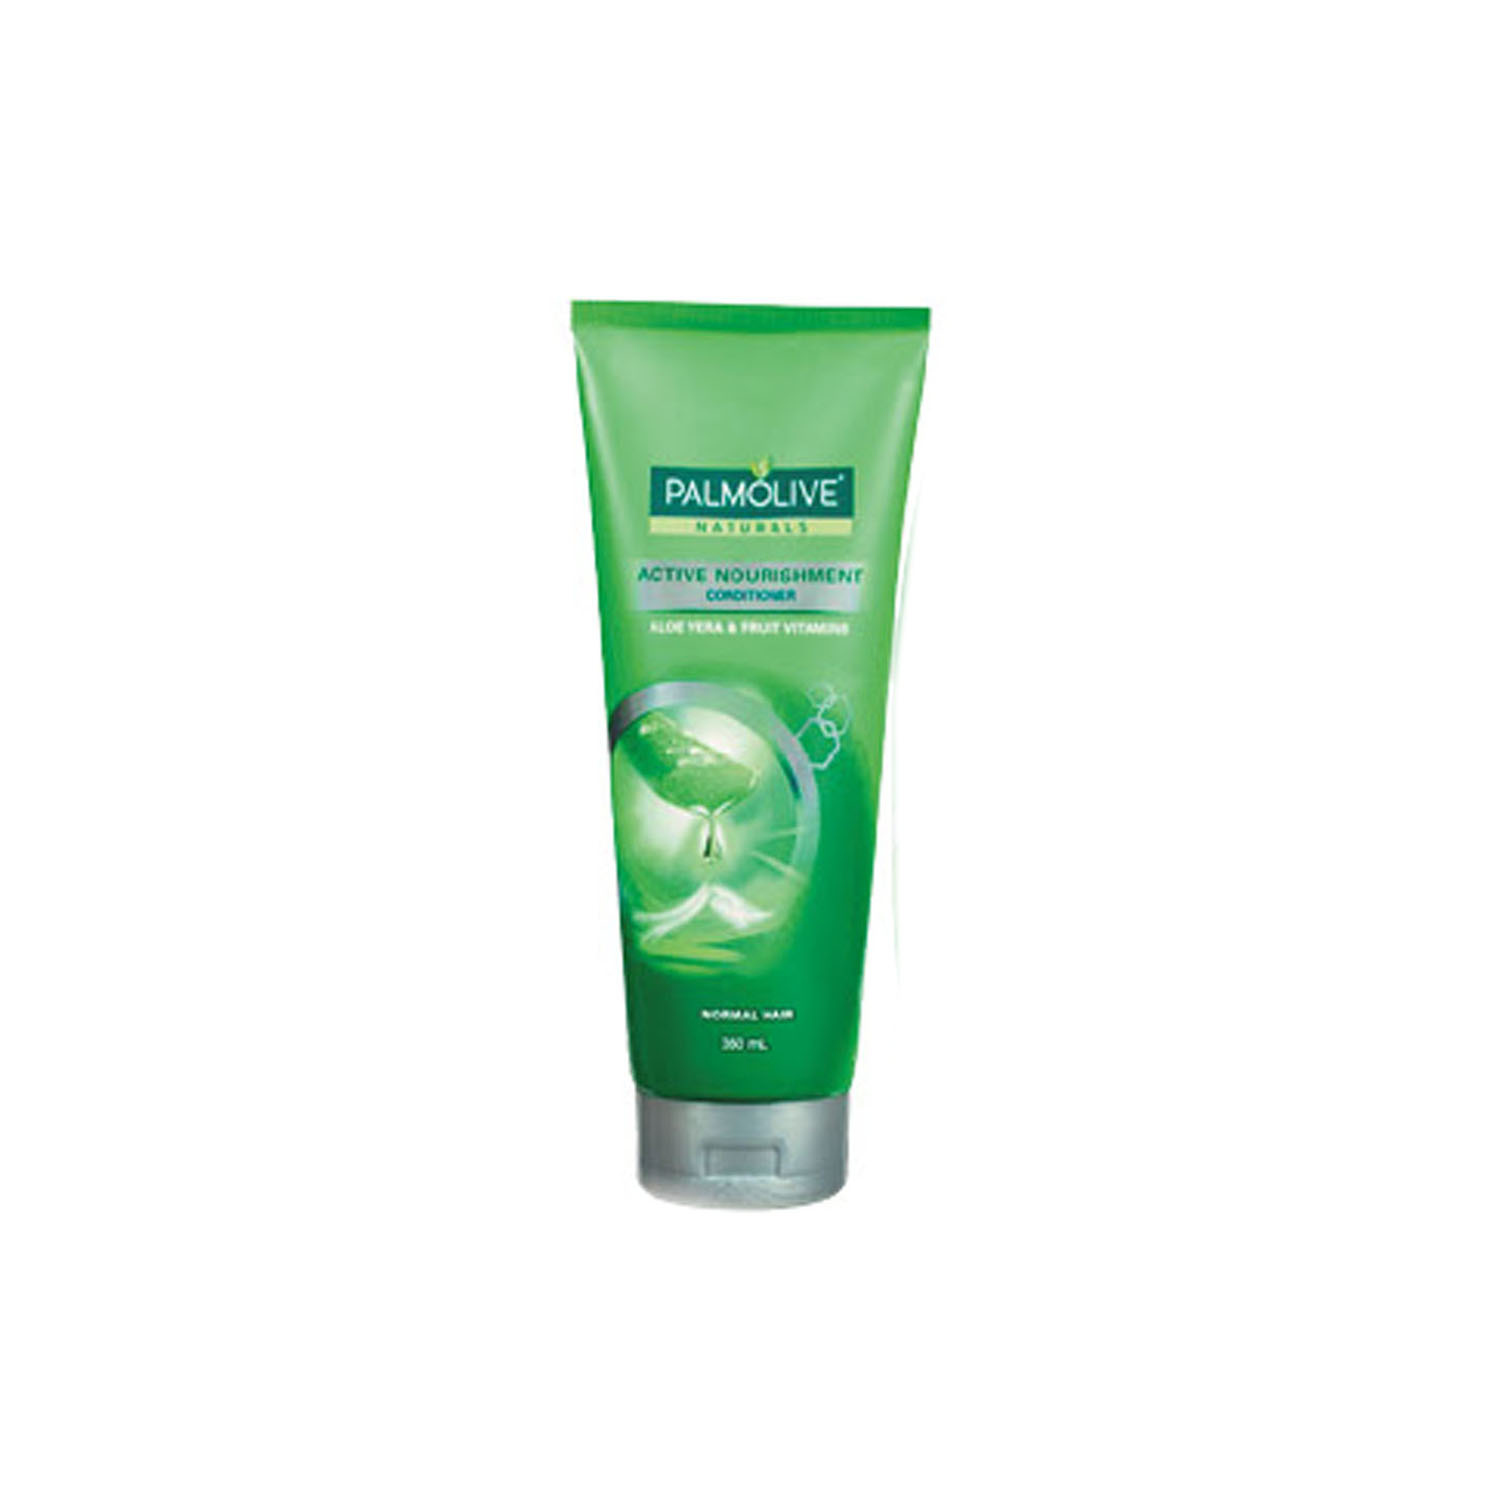 Palmolive Conditioner - Active Nourishment